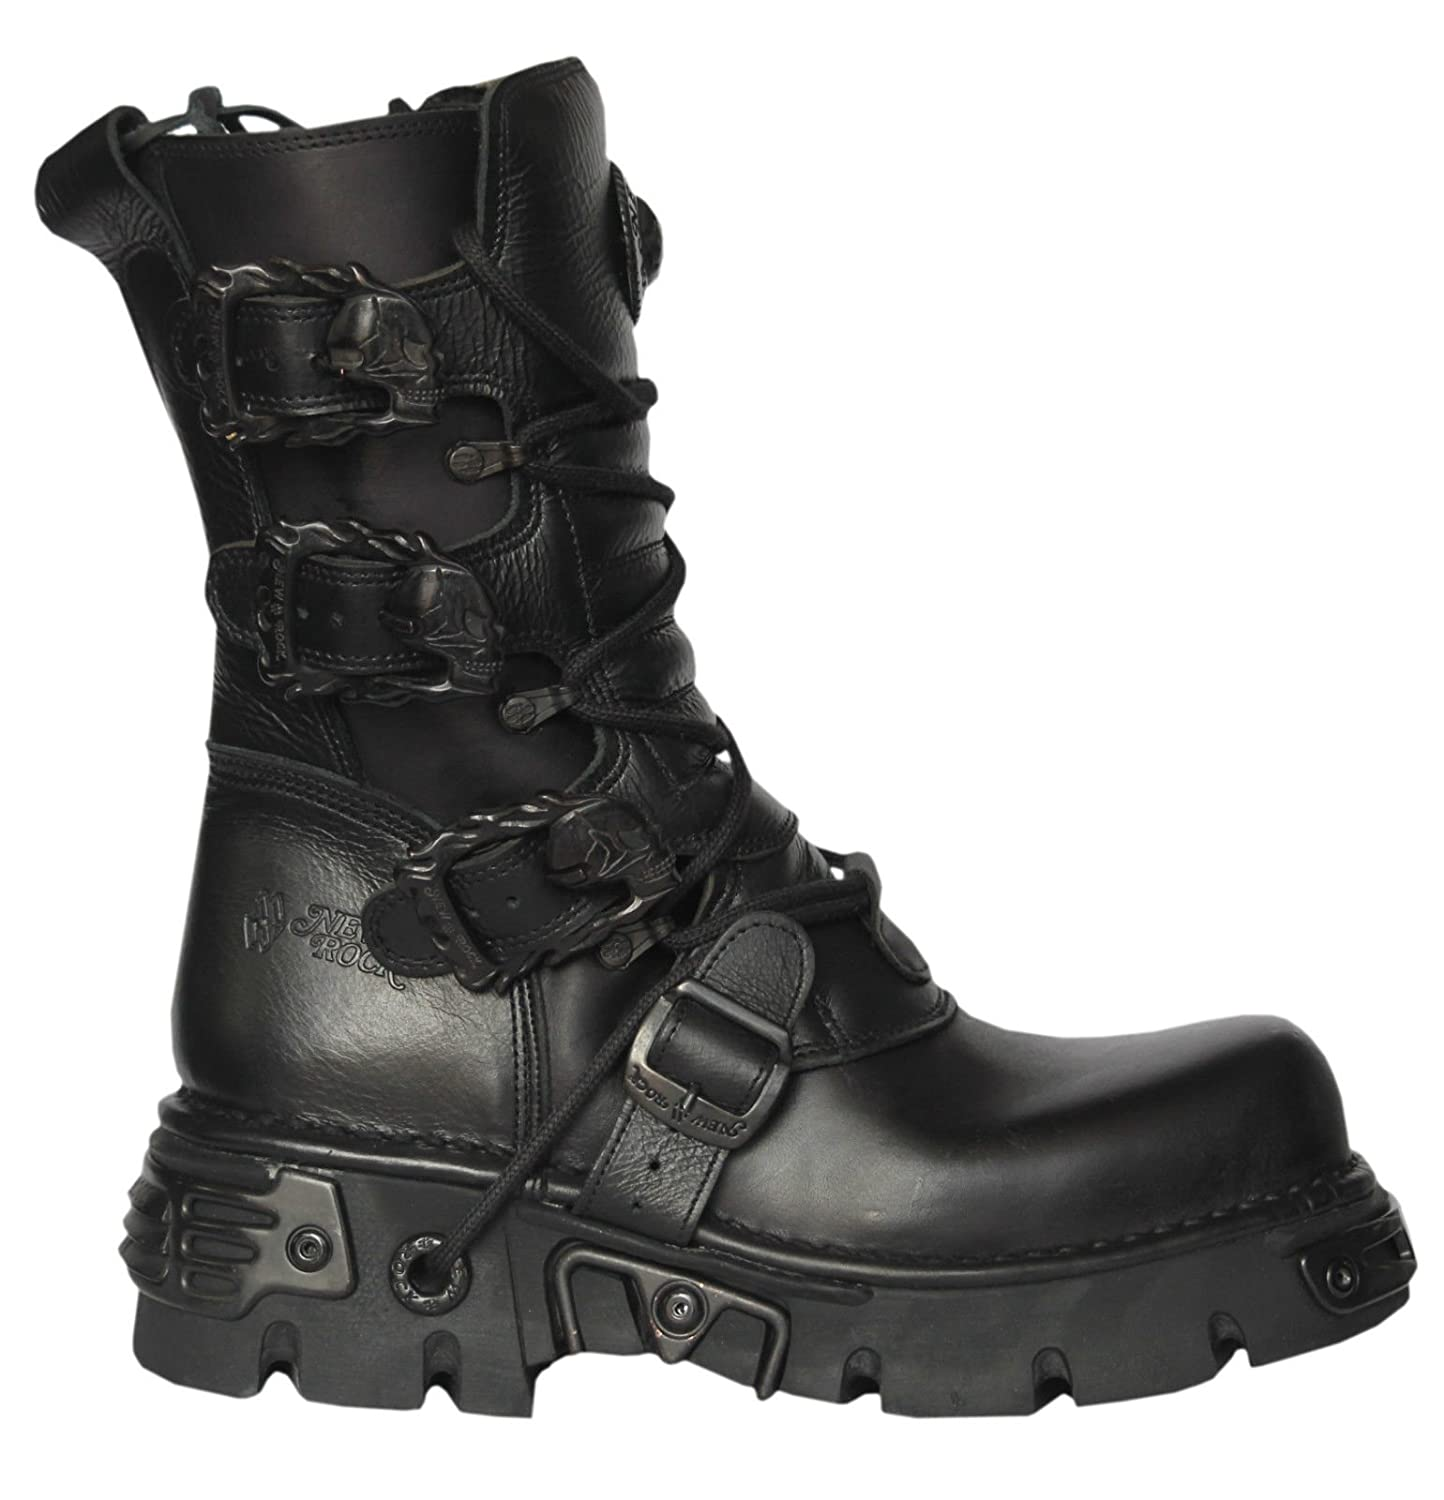 M-391x-s1, Unisex Adults Biker Boots New Rock